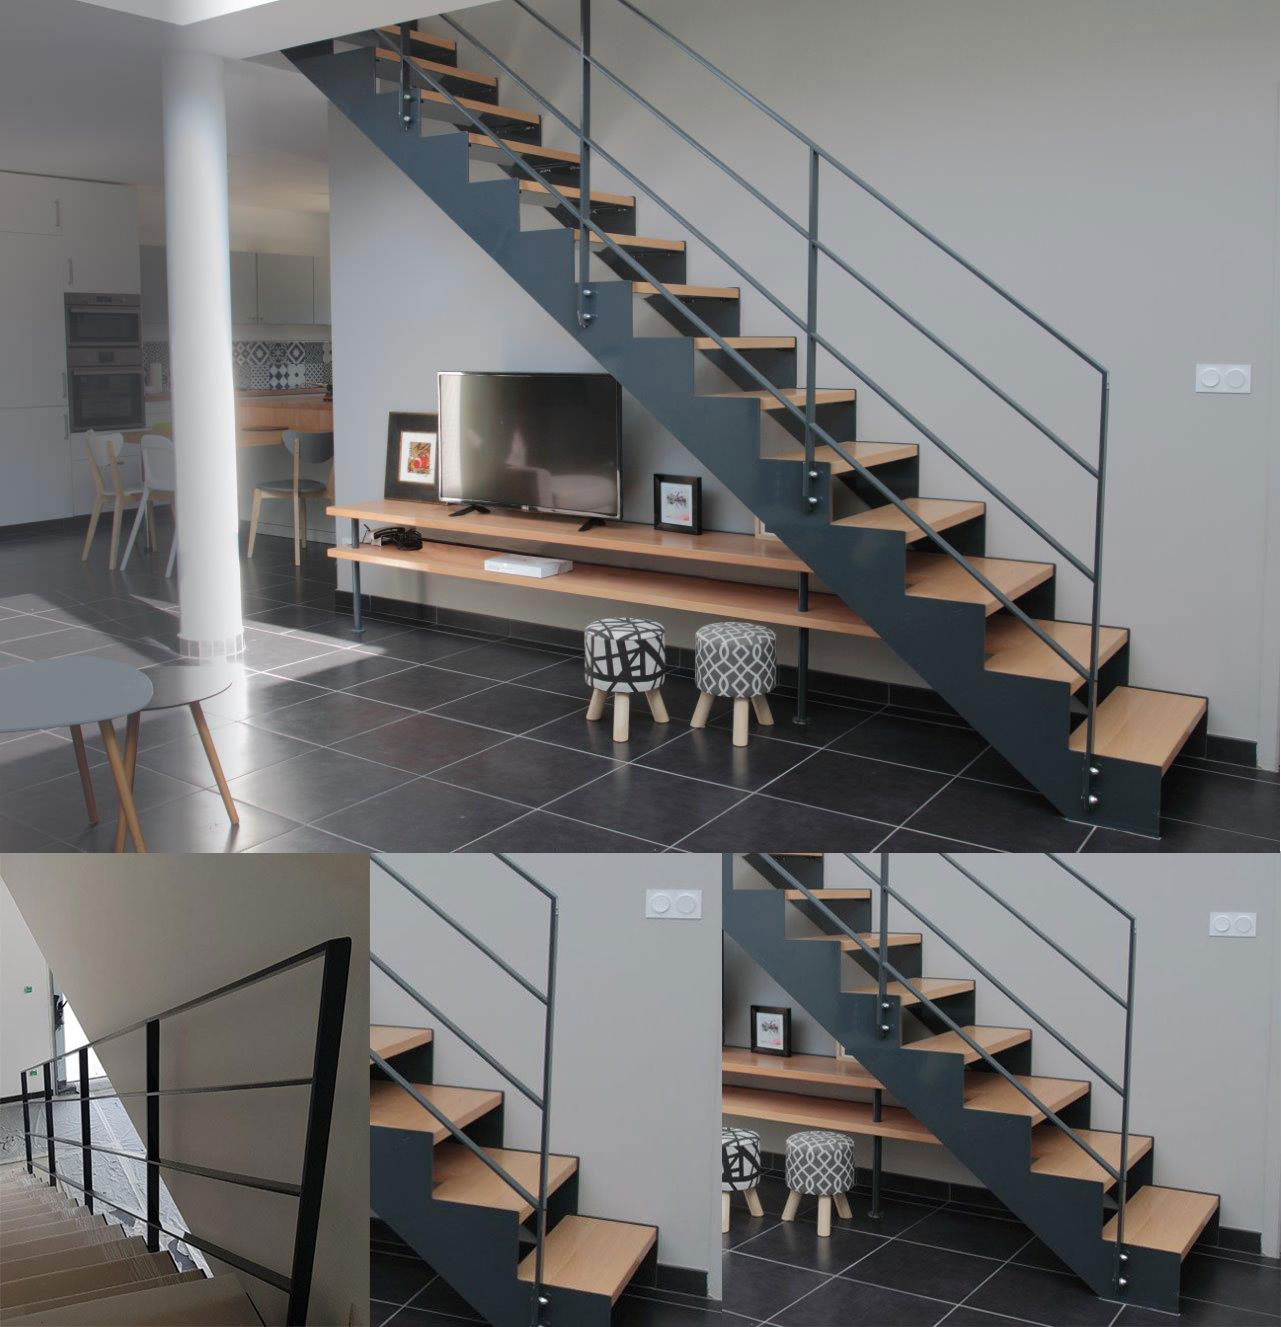 escalier droit avec limons cr maill res en m tal mb. Black Bedroom Furniture Sets. Home Design Ideas